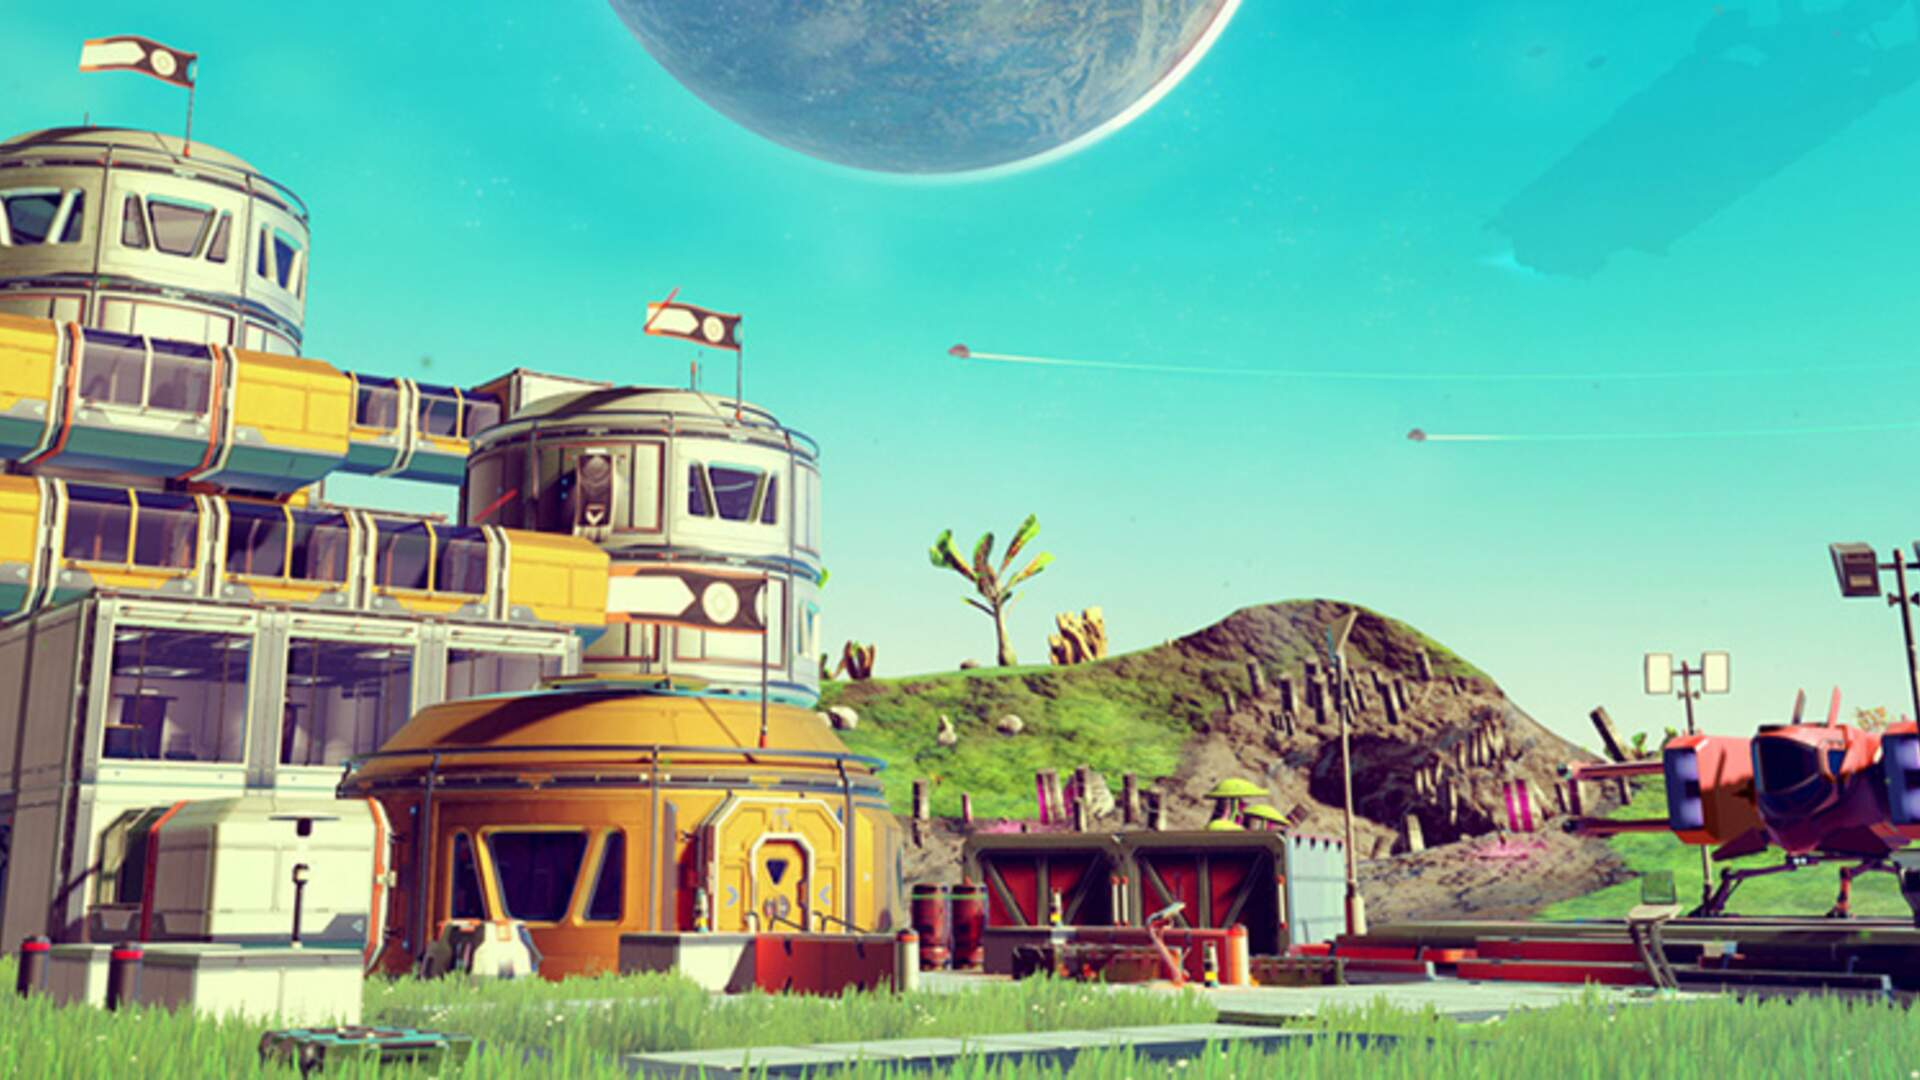 No Man's Sky 1.1 Update Entices With Base-Building, Camps, and Farming